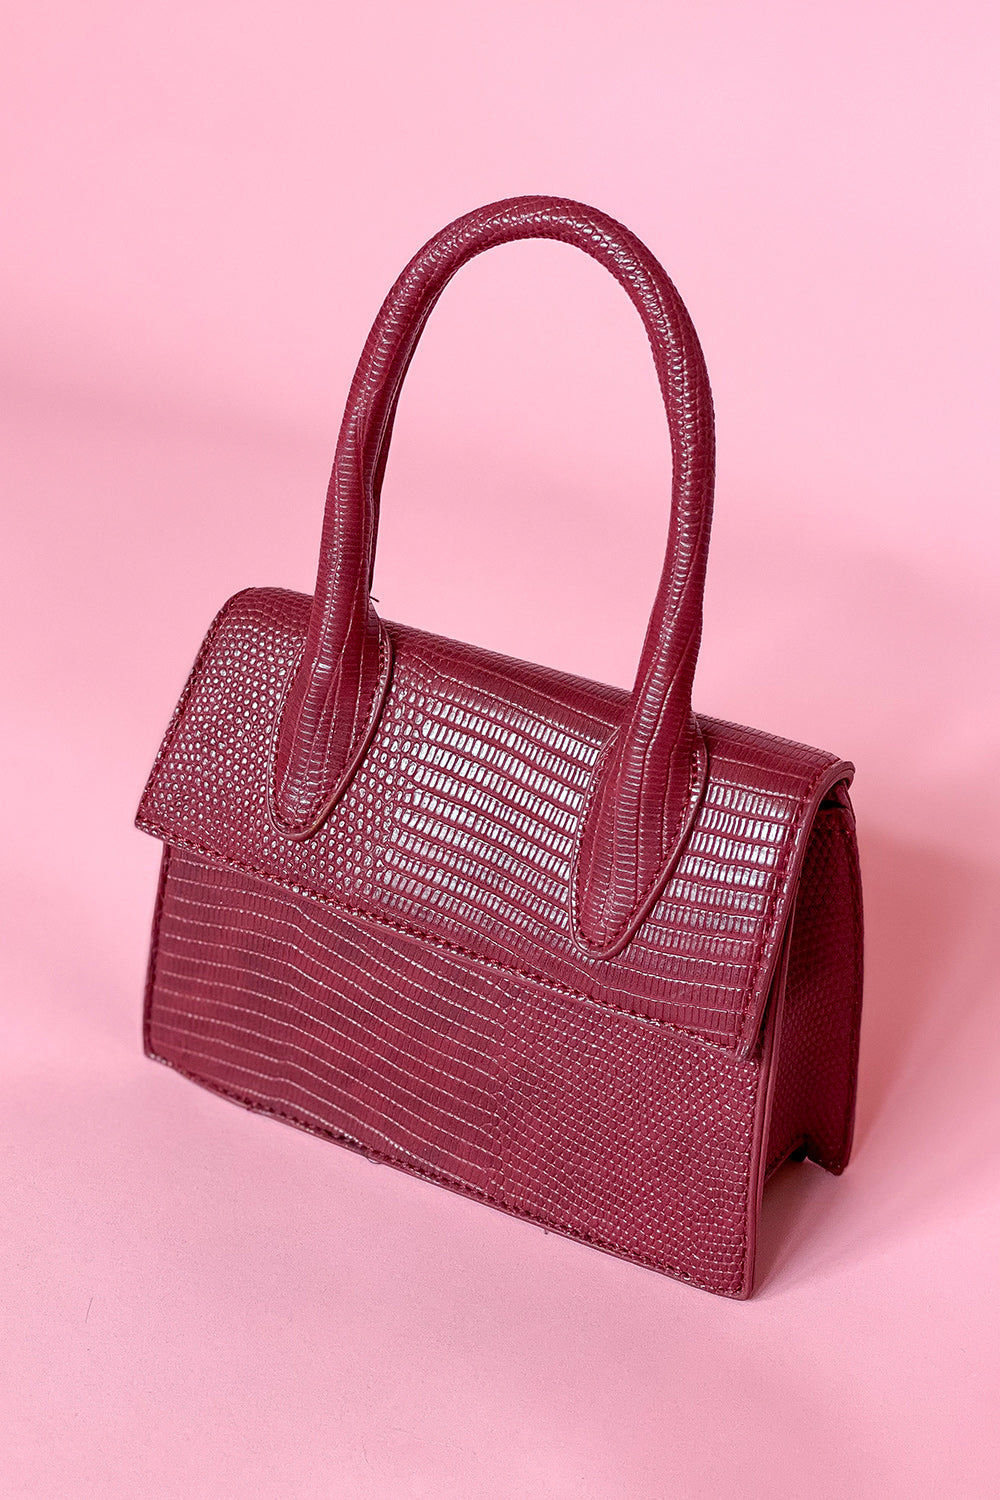 Ready To Croc Burgundy Mini Bag